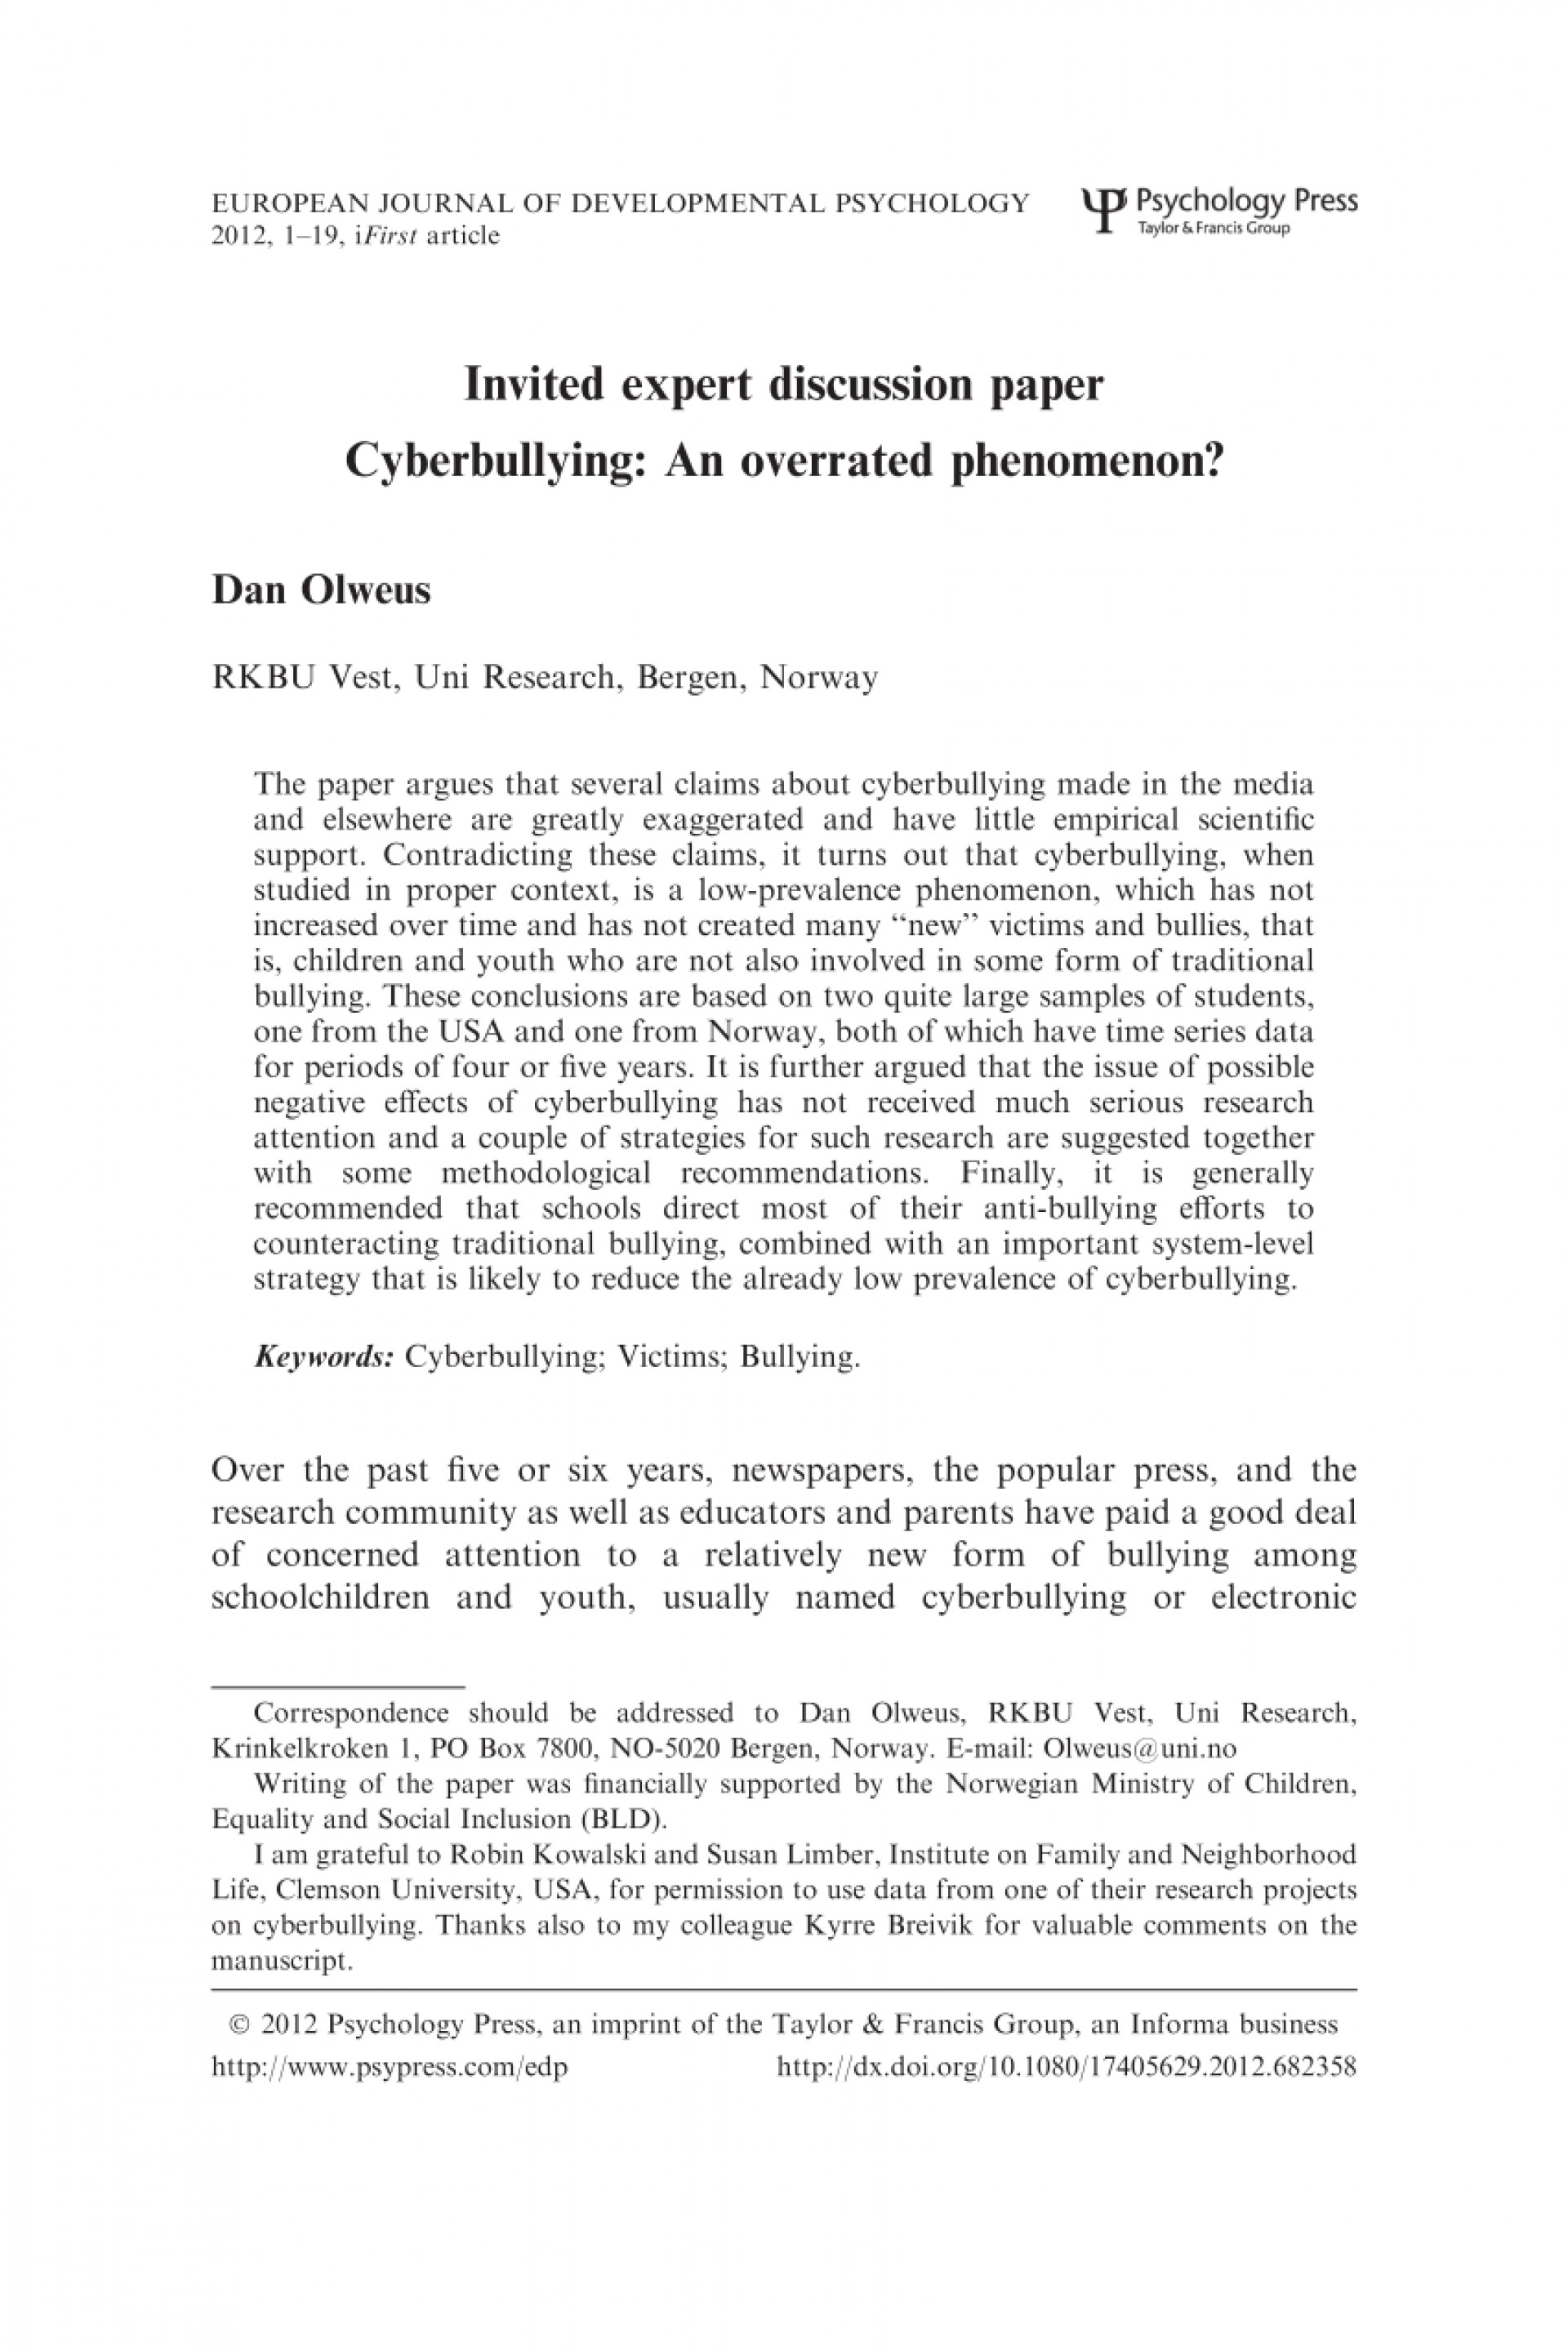 009 Largepreview Cyberbullying Research Paper Awesome Questions 1920